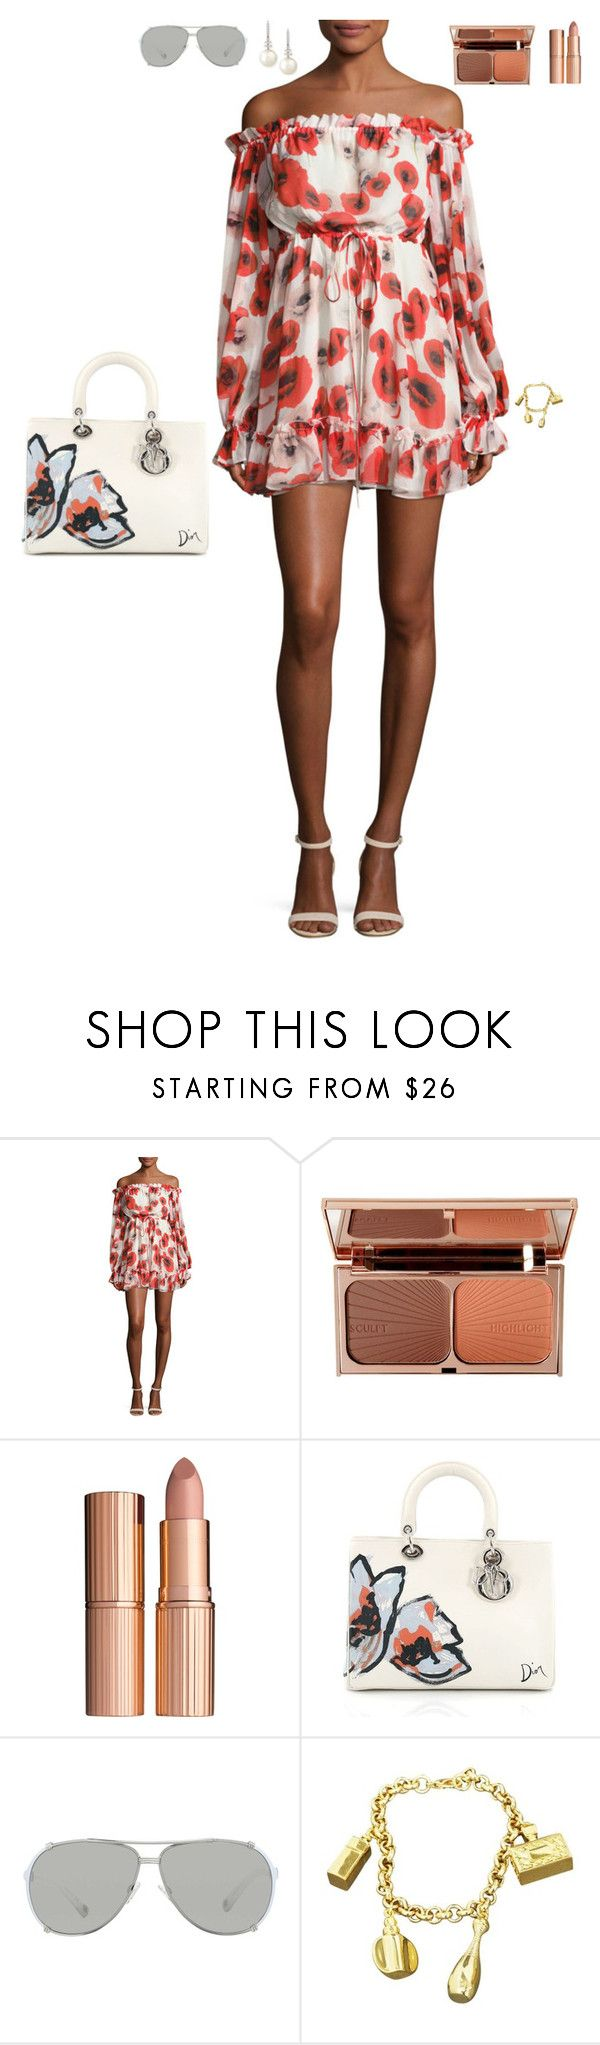 """Holiday on the beach"" by stylev ❤ liked on Polyvore featuring Nicholas, Charlotte Tilbury, Christian Dior and Belpearl"